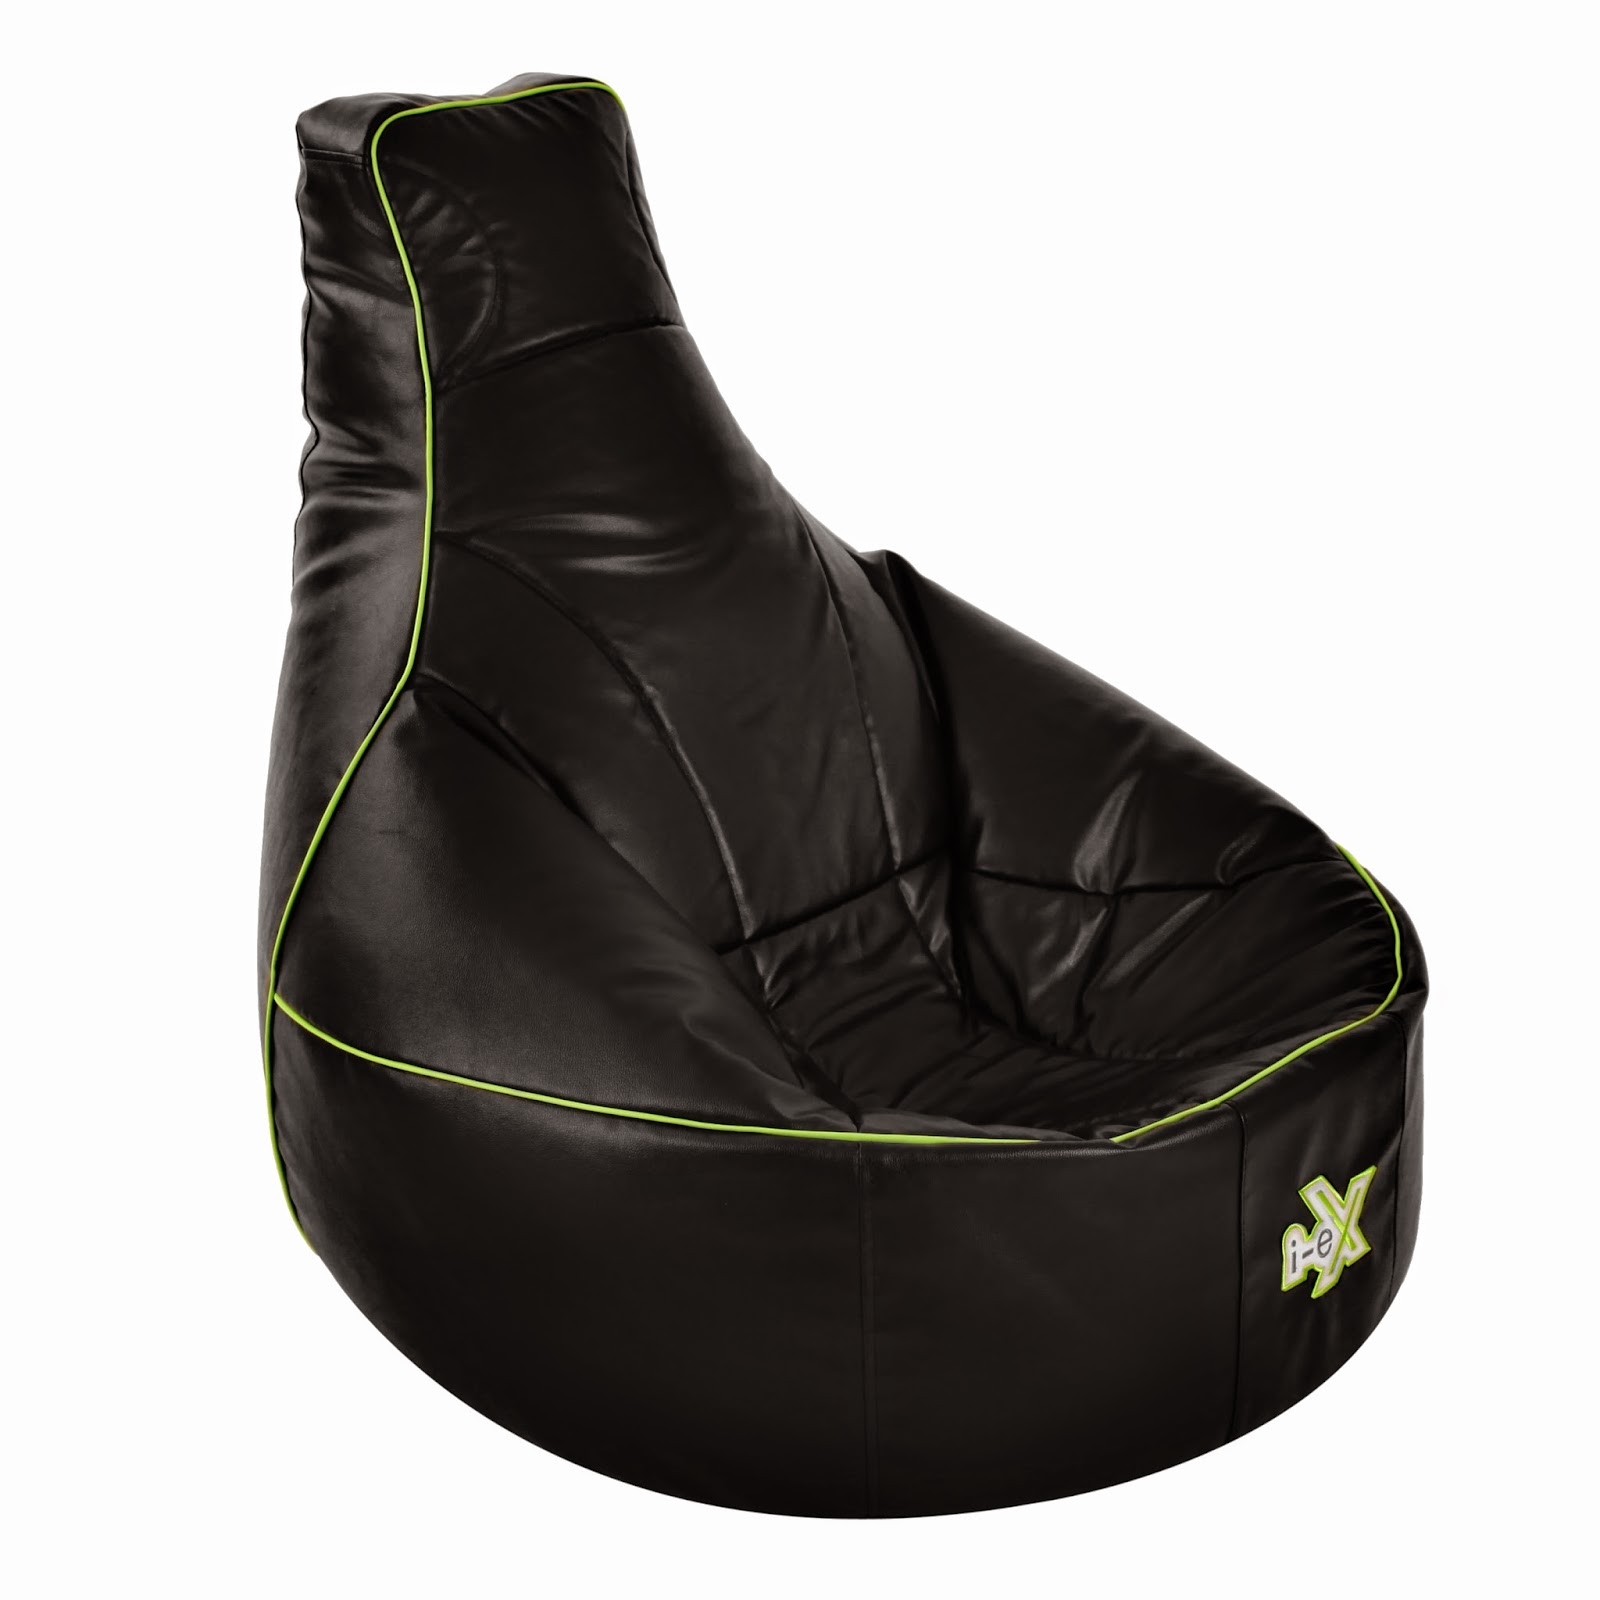 Ll Bean Bean Bag Chair Review I Ex Bean Bag Gaming Chair The Test Pit